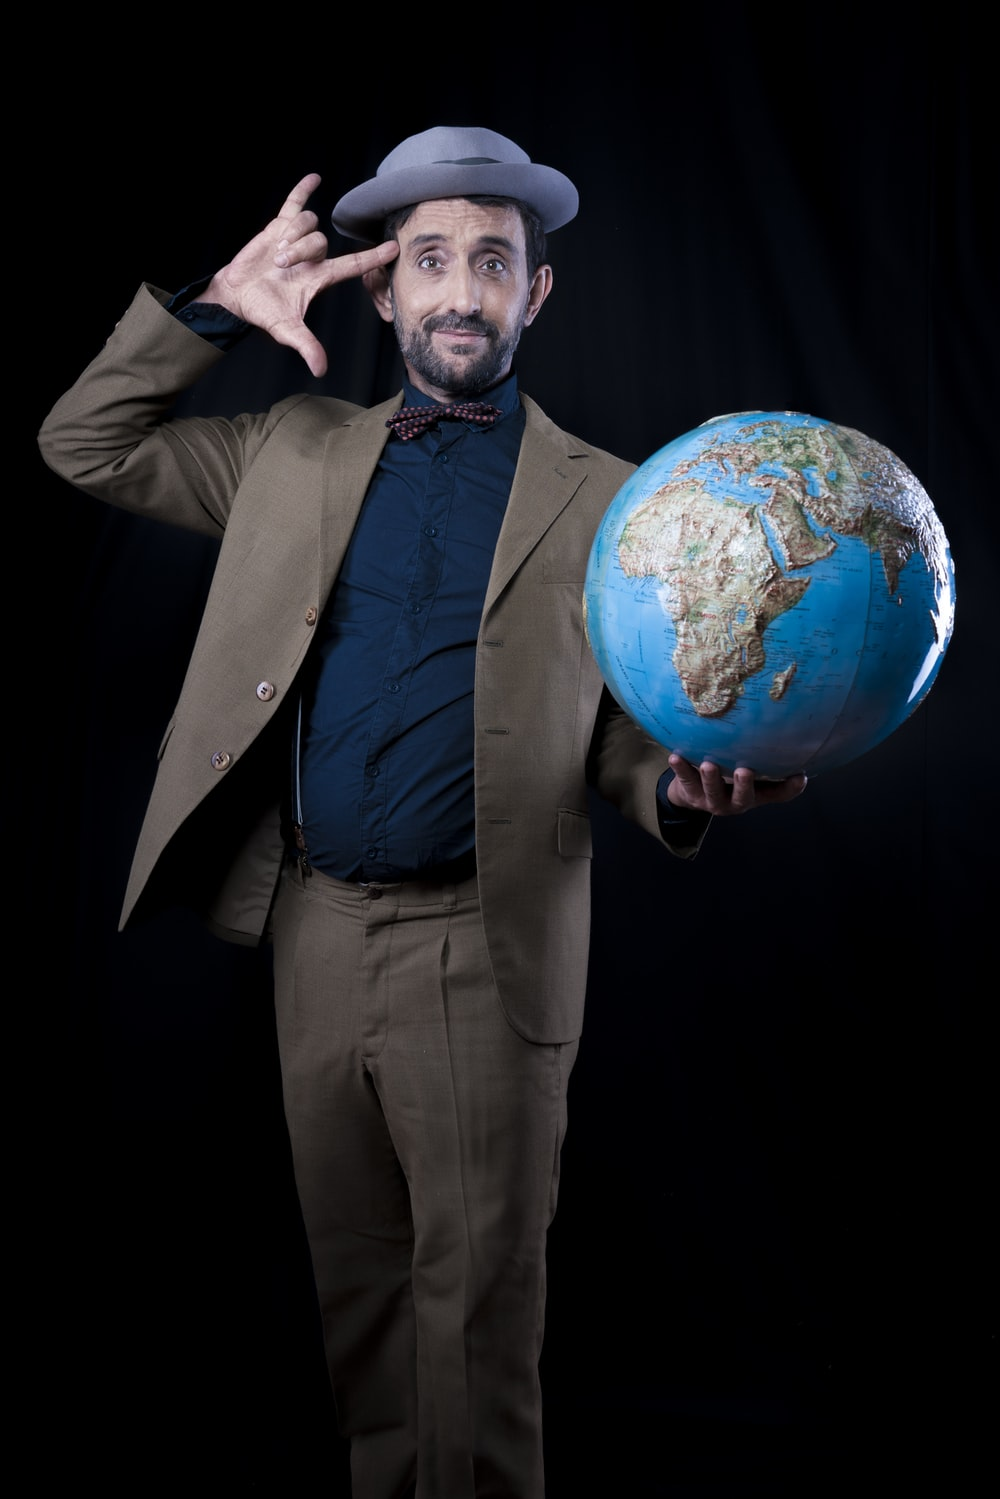 man in brown suit jacket and dress pants holding planet earth toy